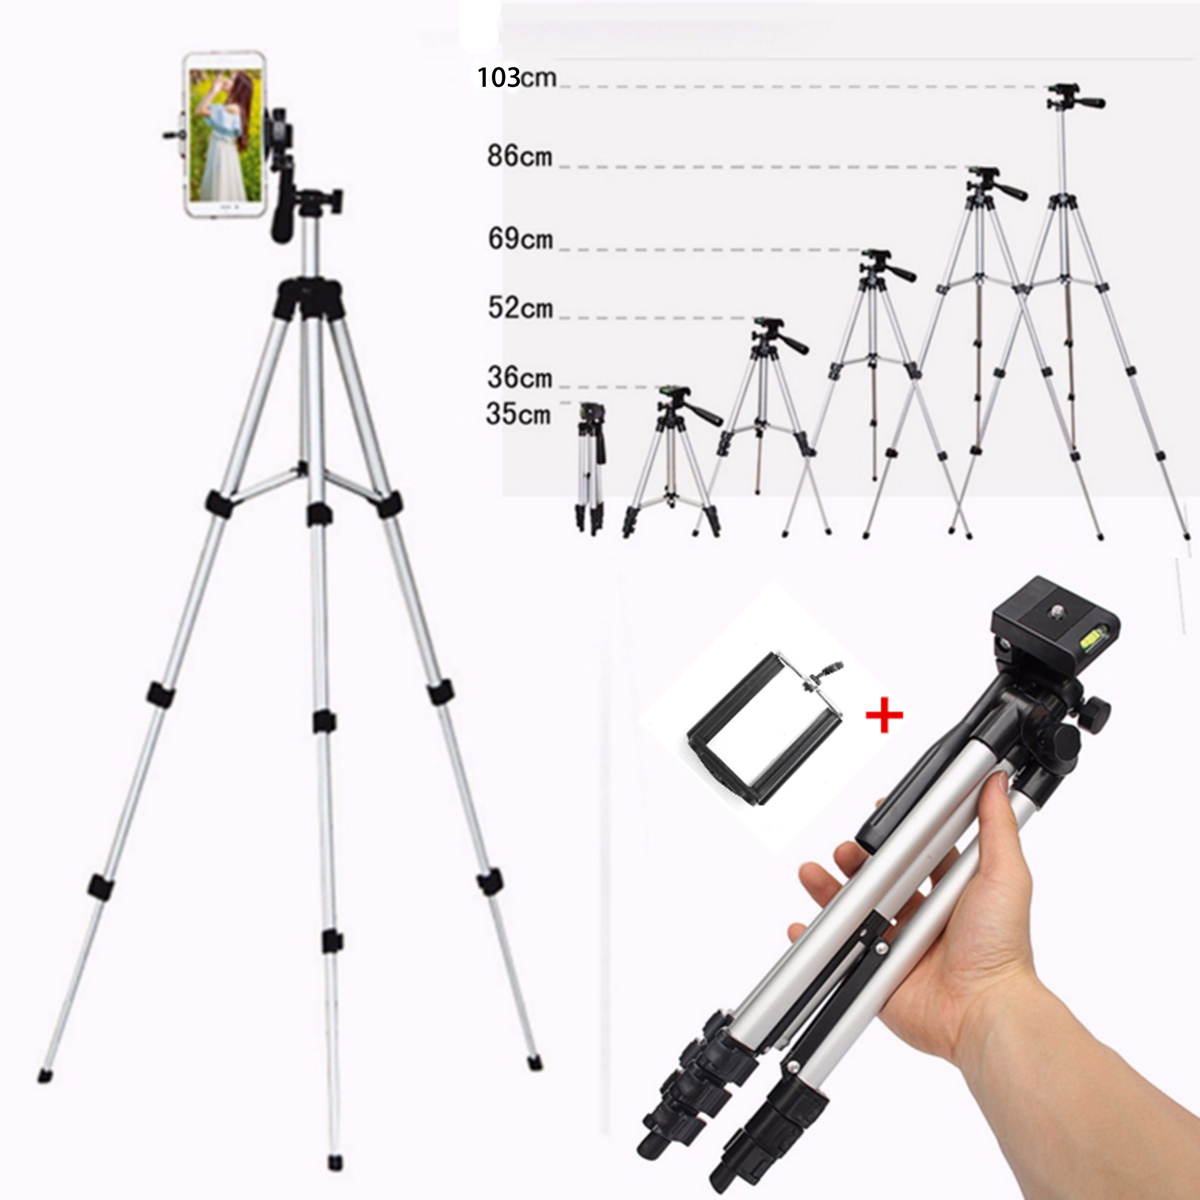 Telescopic Mobile Phone Digital Camera Camcorder Flexible Tripod Stand Mount + Holder For Canon for Nikon for iPhone 6 7 8 X XR